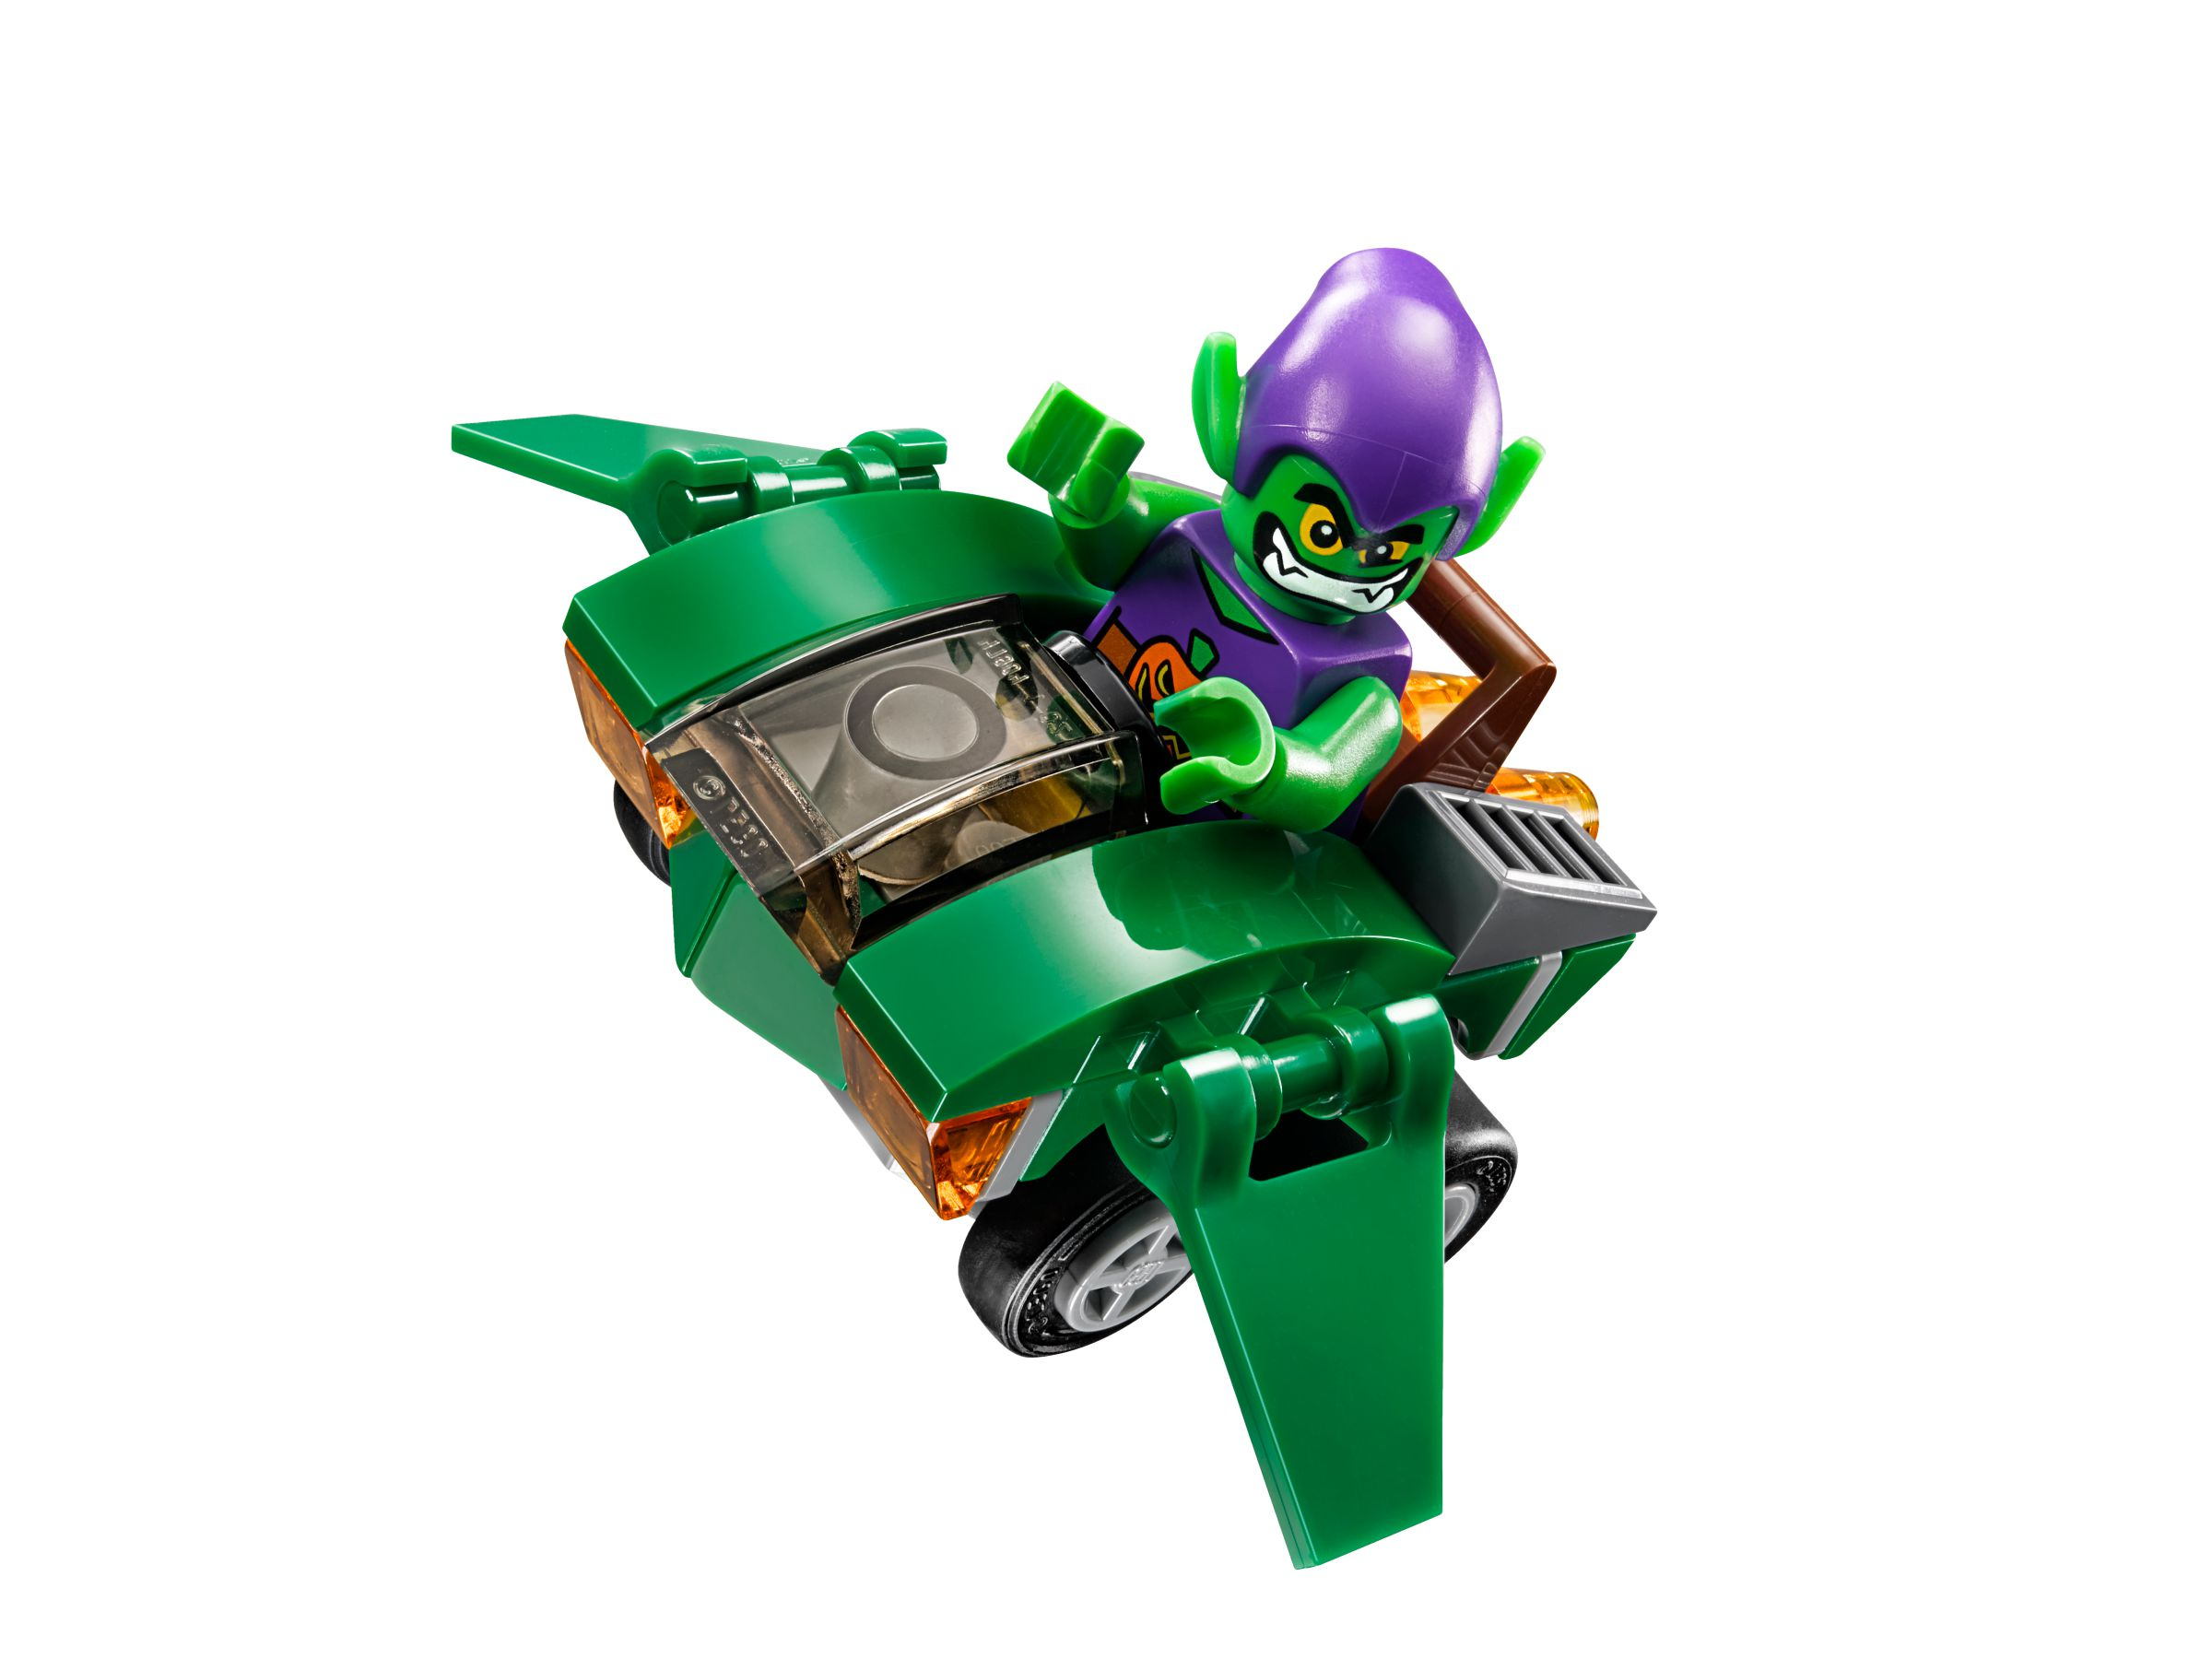 LEGO Super Heroes 76064 Mighty Micros: Spider-Man vs. Green Goblin LEGO_76064_alt2.jpg